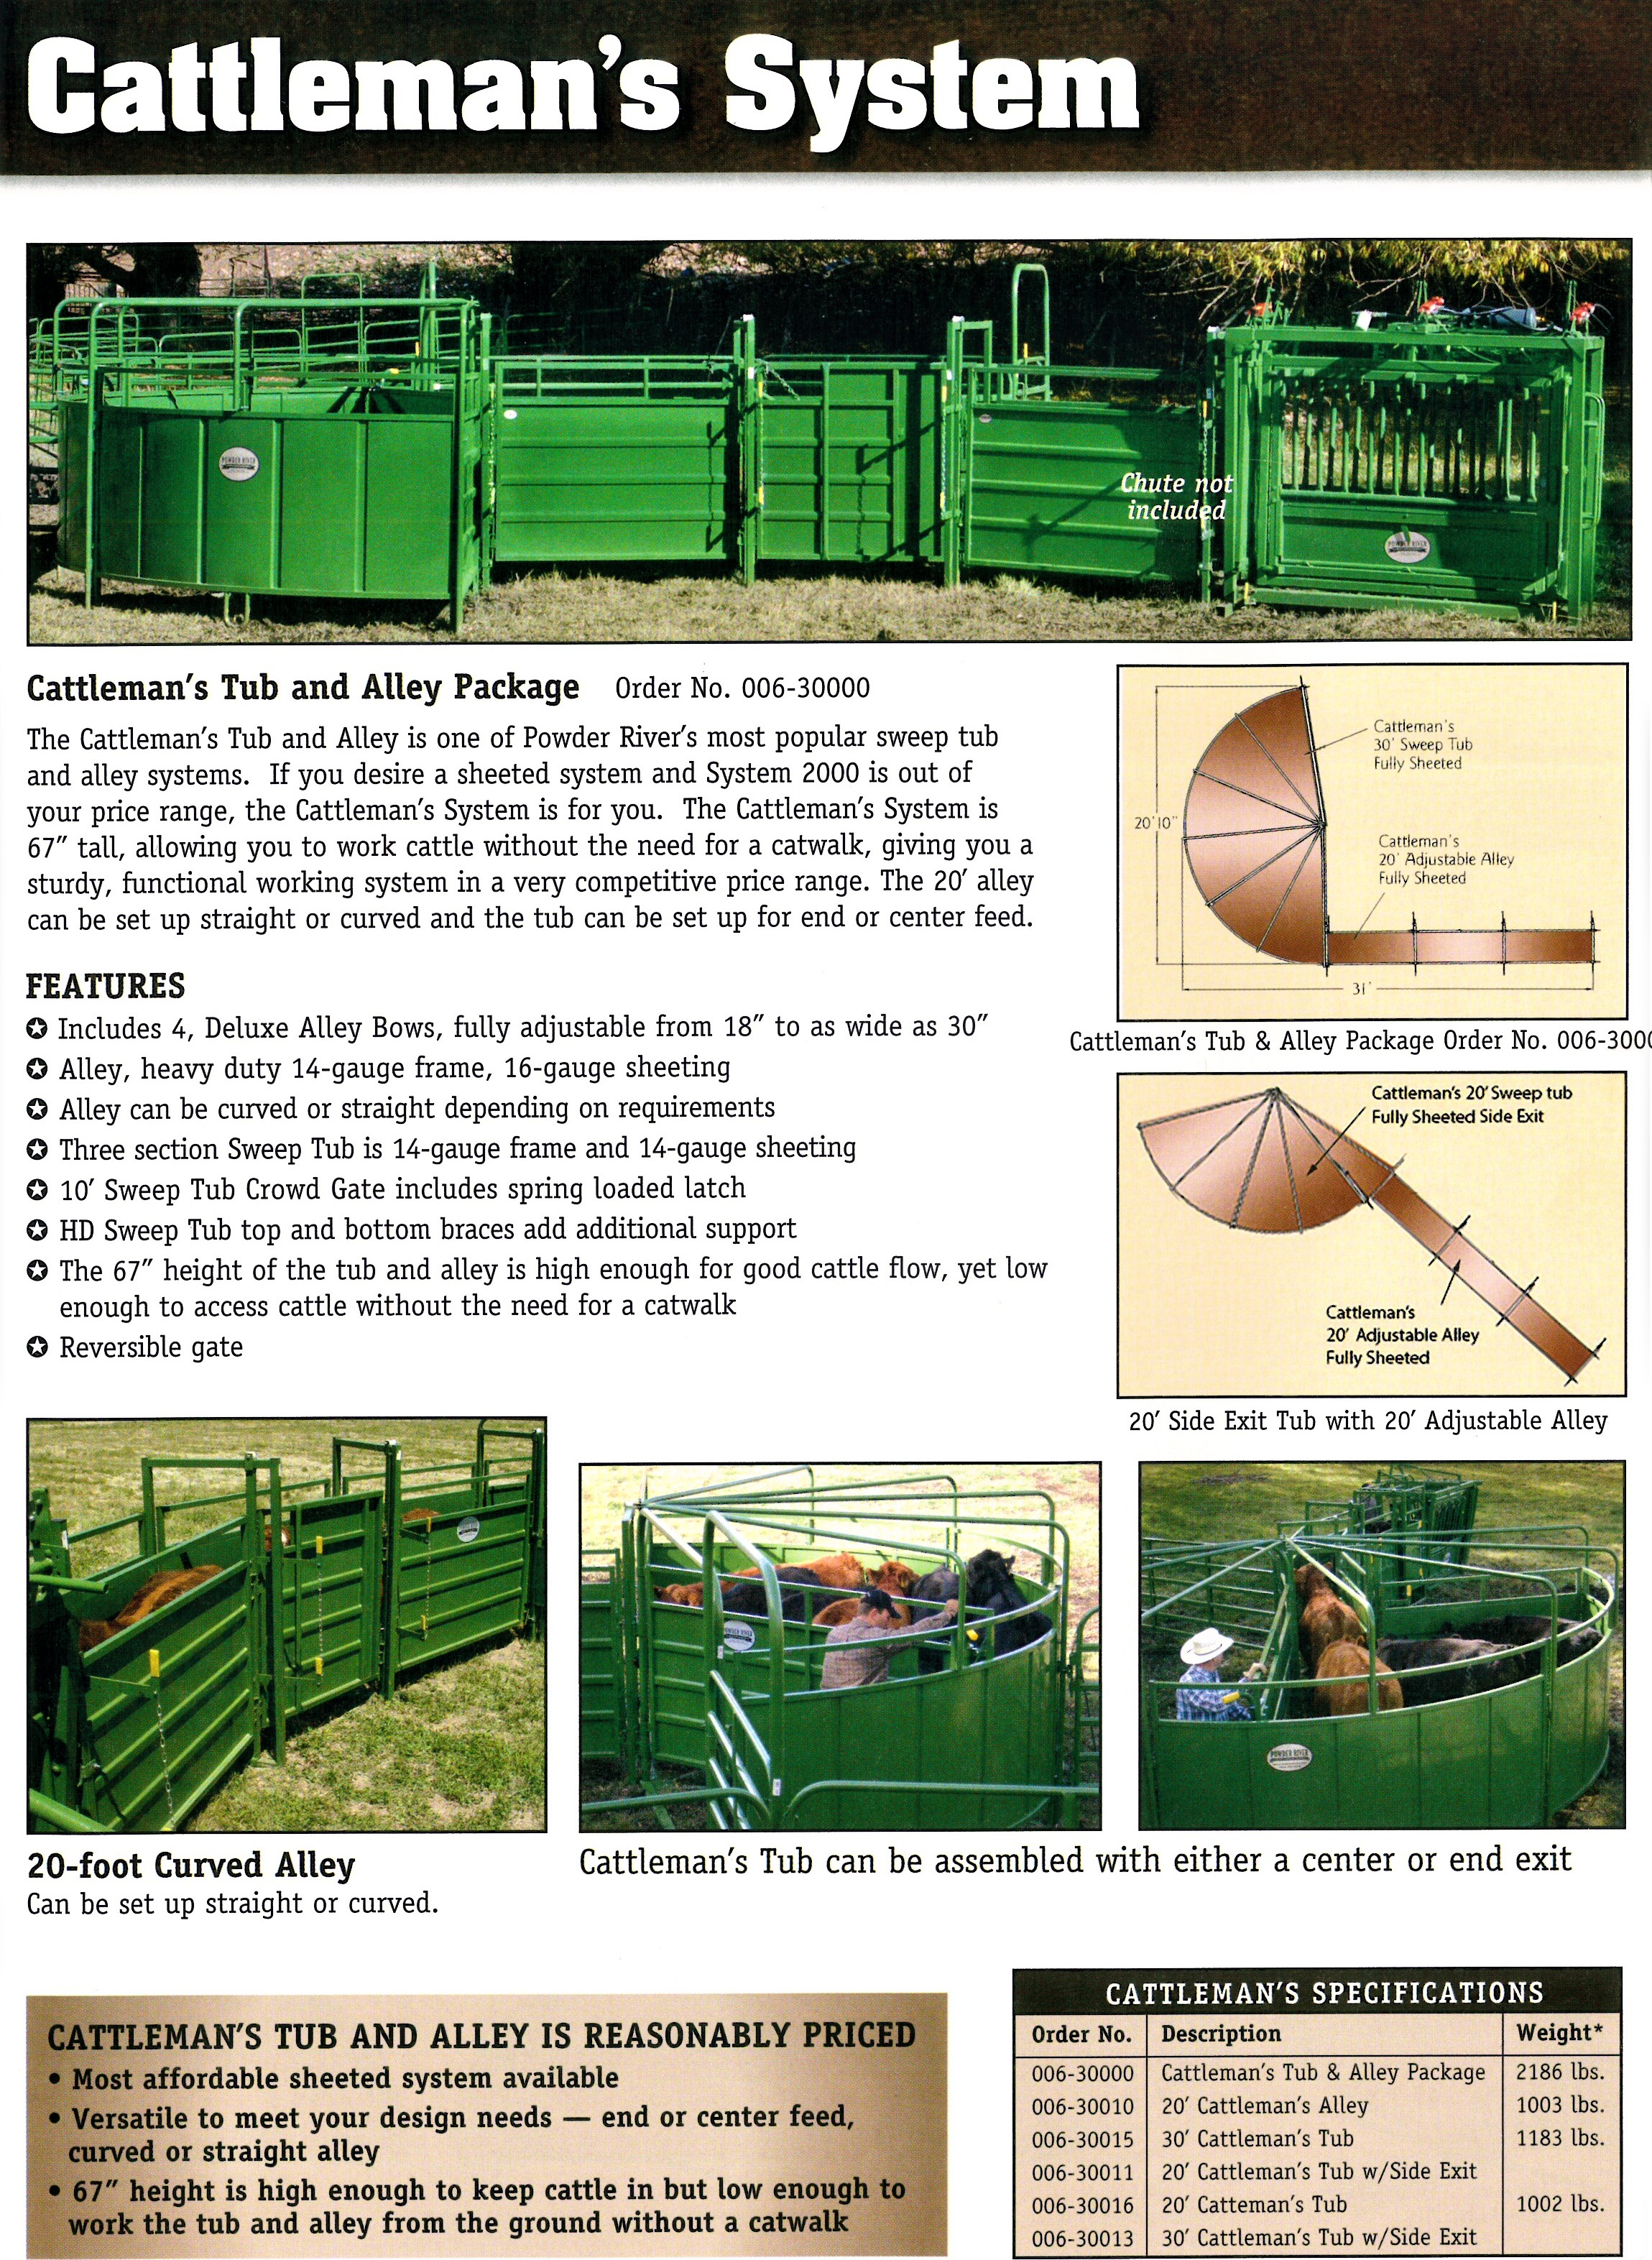 powder-river-cattlemans-system-tub-and-alley-package-pg-22.jpg